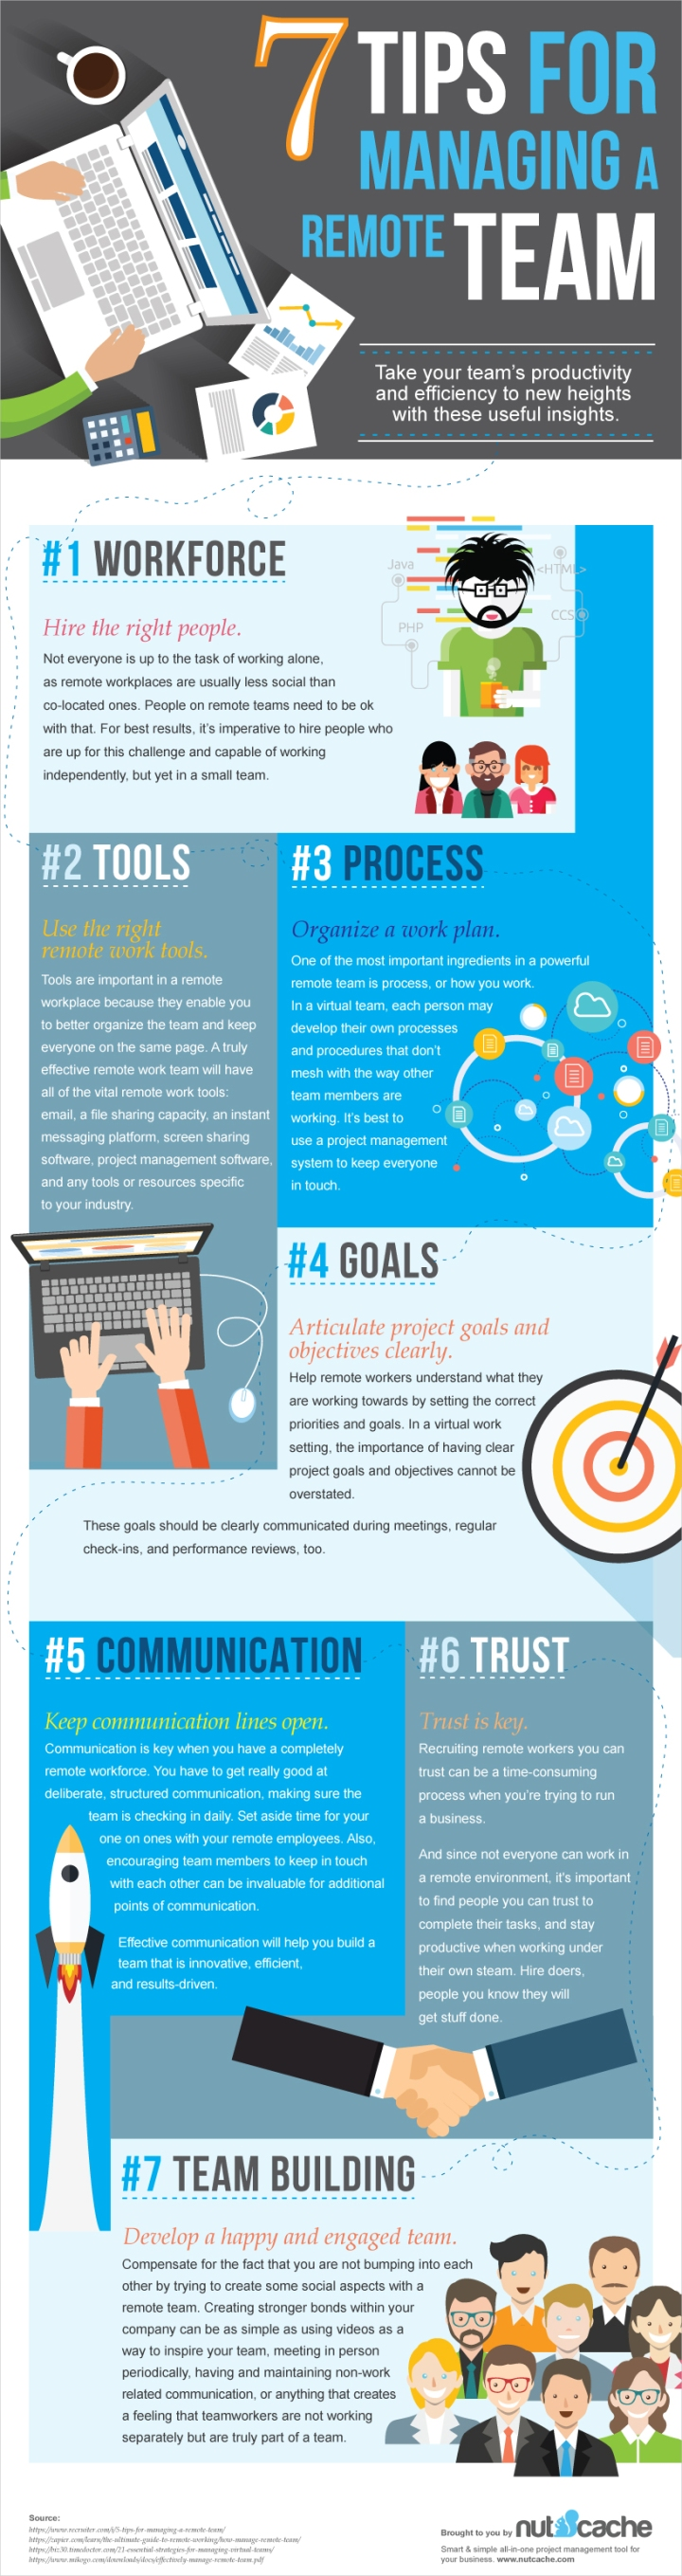 INFOGRAPHIC: 7 Tips For Managing Remote Teams (via NutCache)